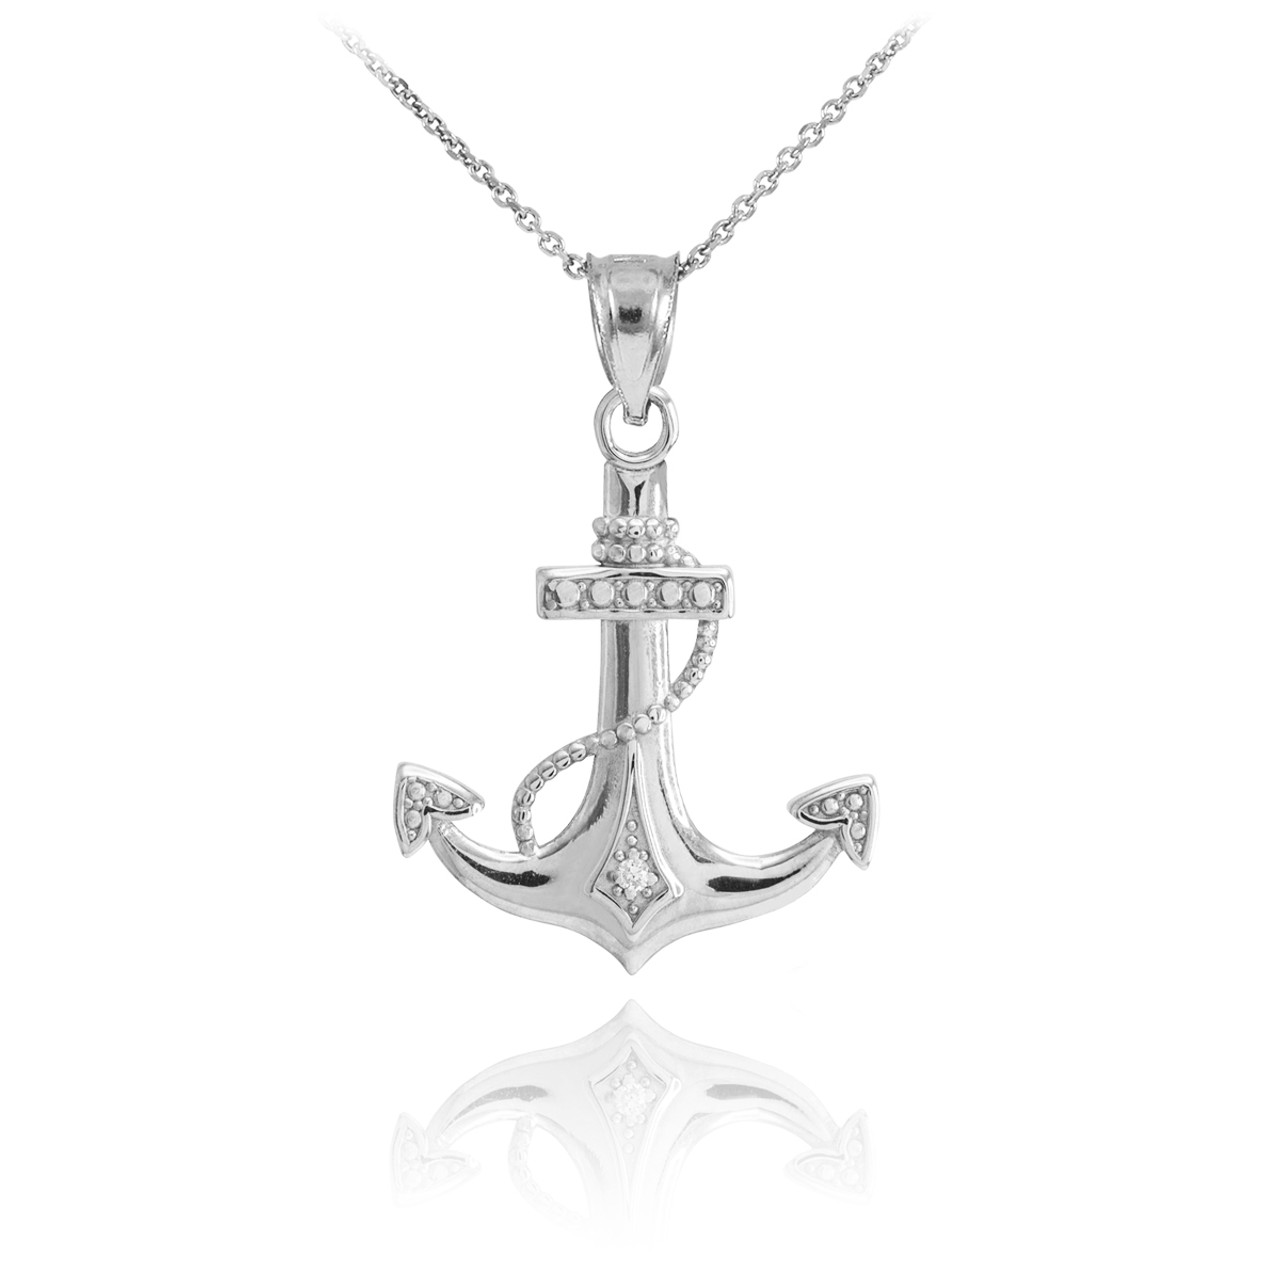 White gold anchor pendant necklace white gold diamond anchor pendant necklace aloadofball Images